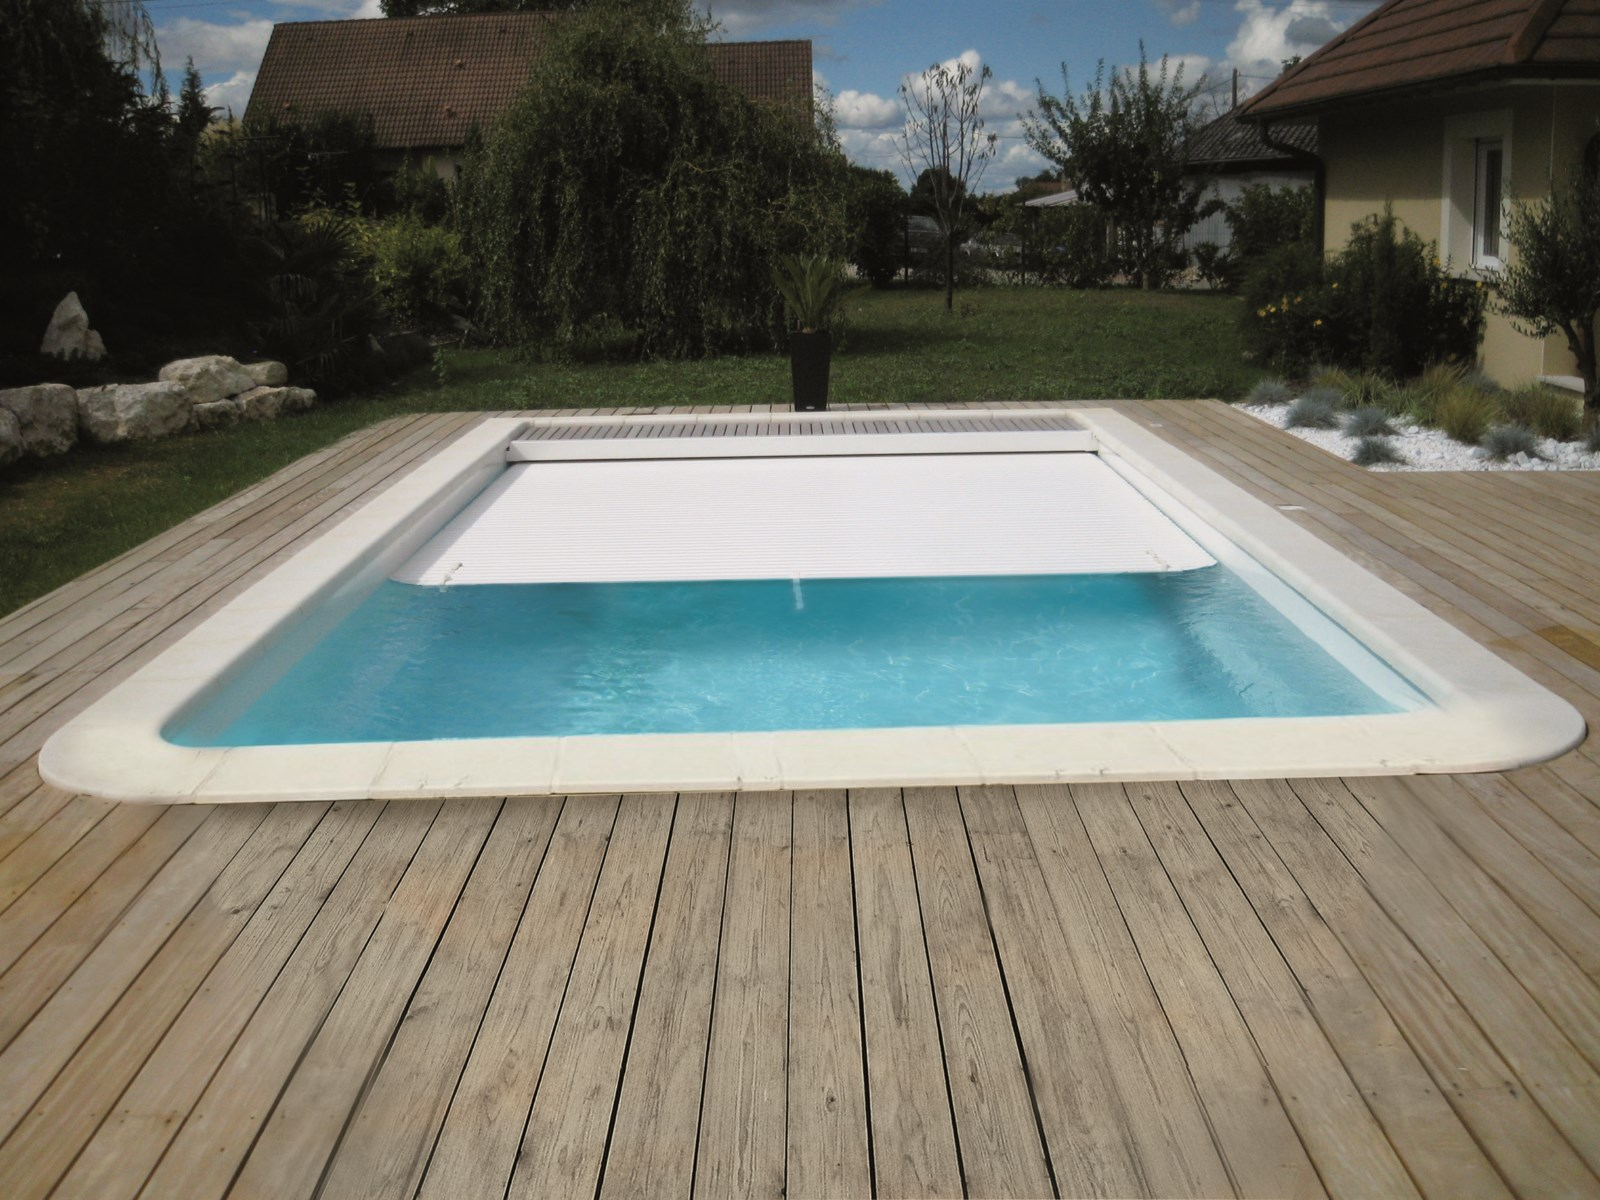 Prix d 39 une piscine coque pose comprise olga cie en for Piscine coque pose comprise